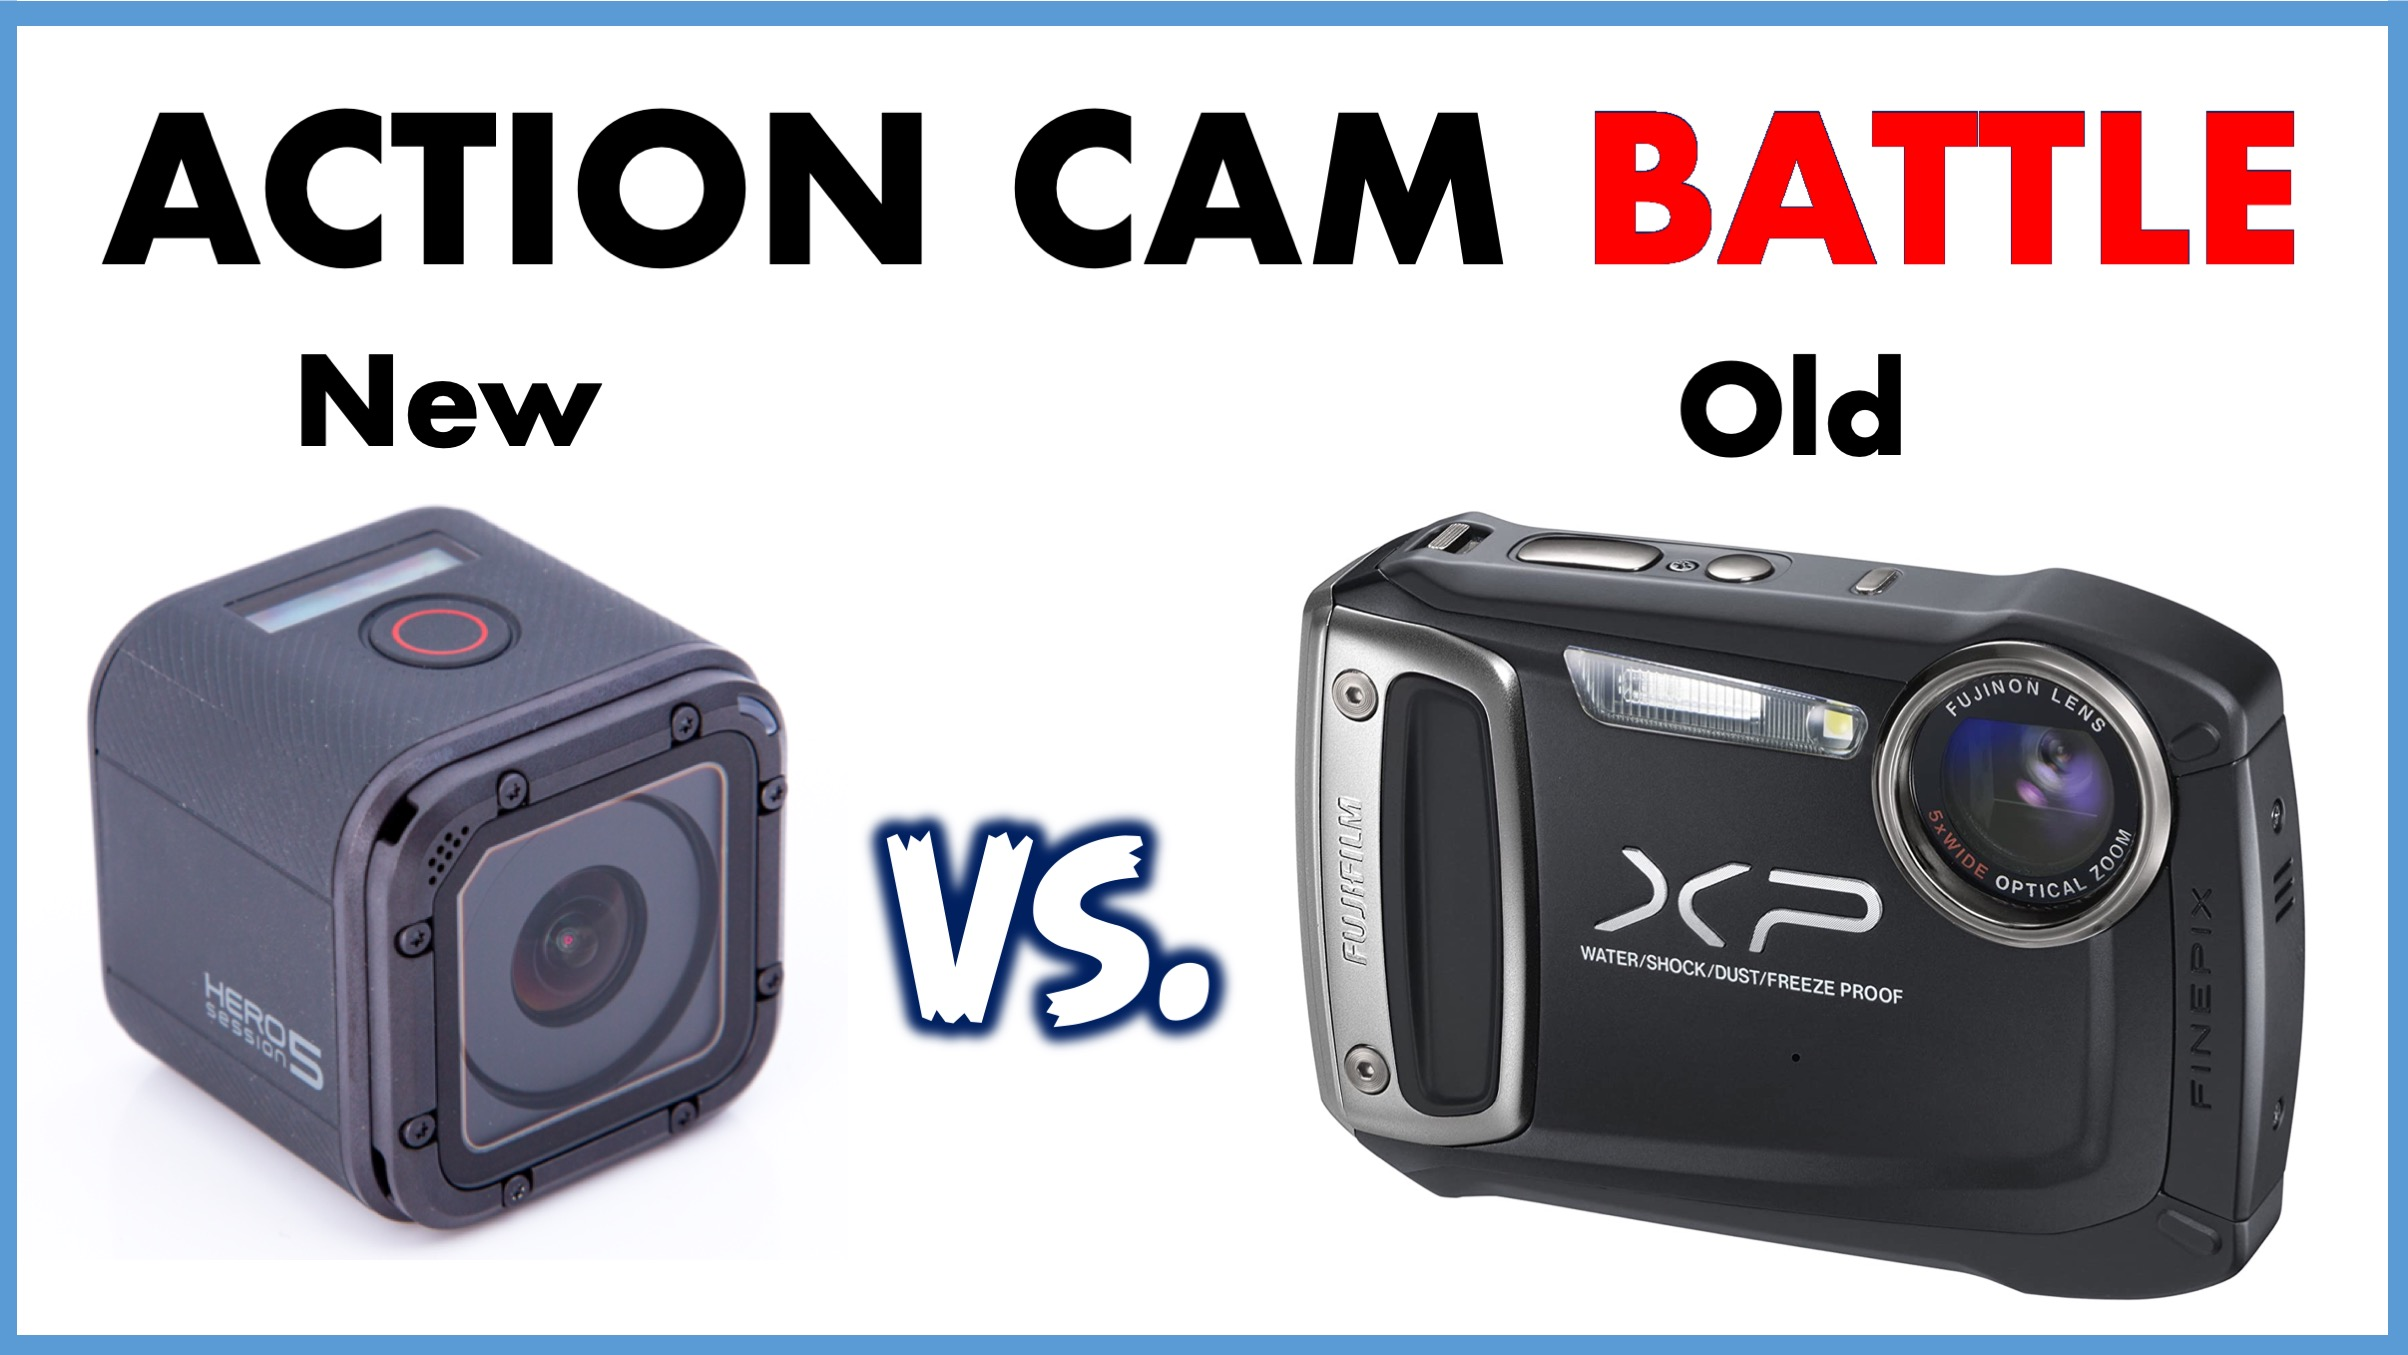 Action Camera Battle